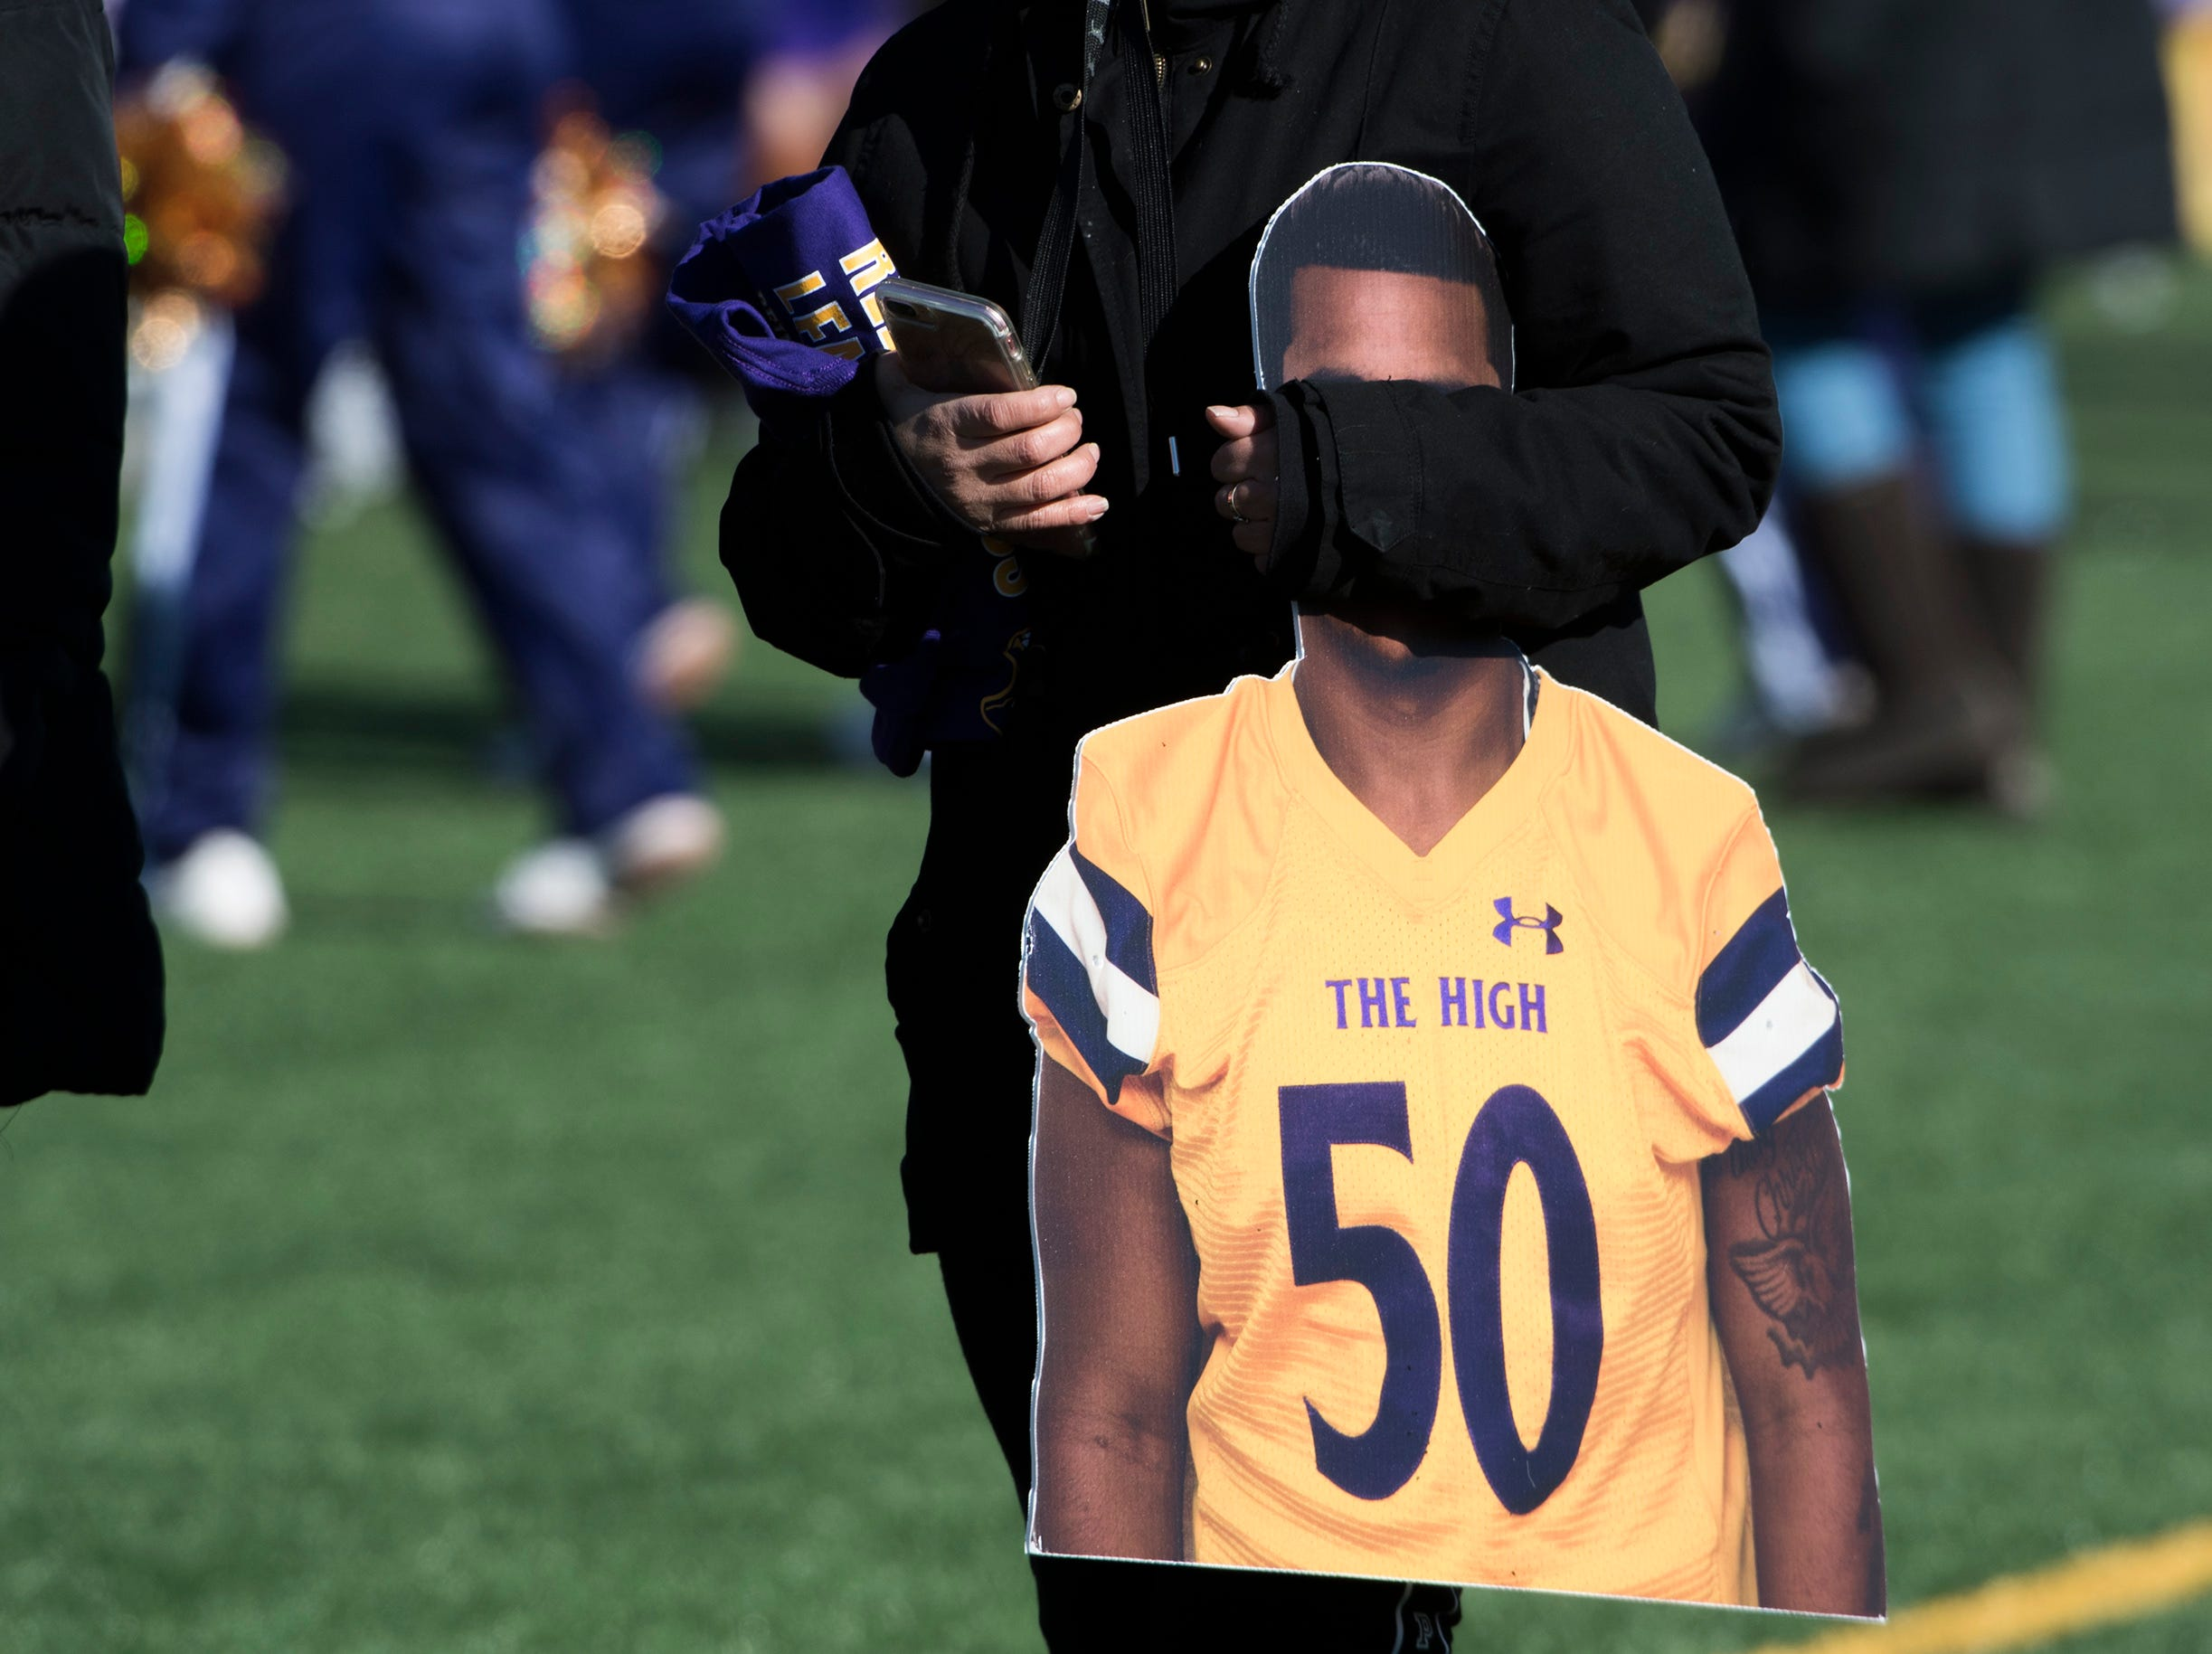 A cardboard cutout of Camden's Hiram Castro is carried on the sideline before an annual Camden-Woodrow Wilson Thanksgiving game Thursday, Nov. 22, 2018 in Camden, N.J. Camden won 39-28.